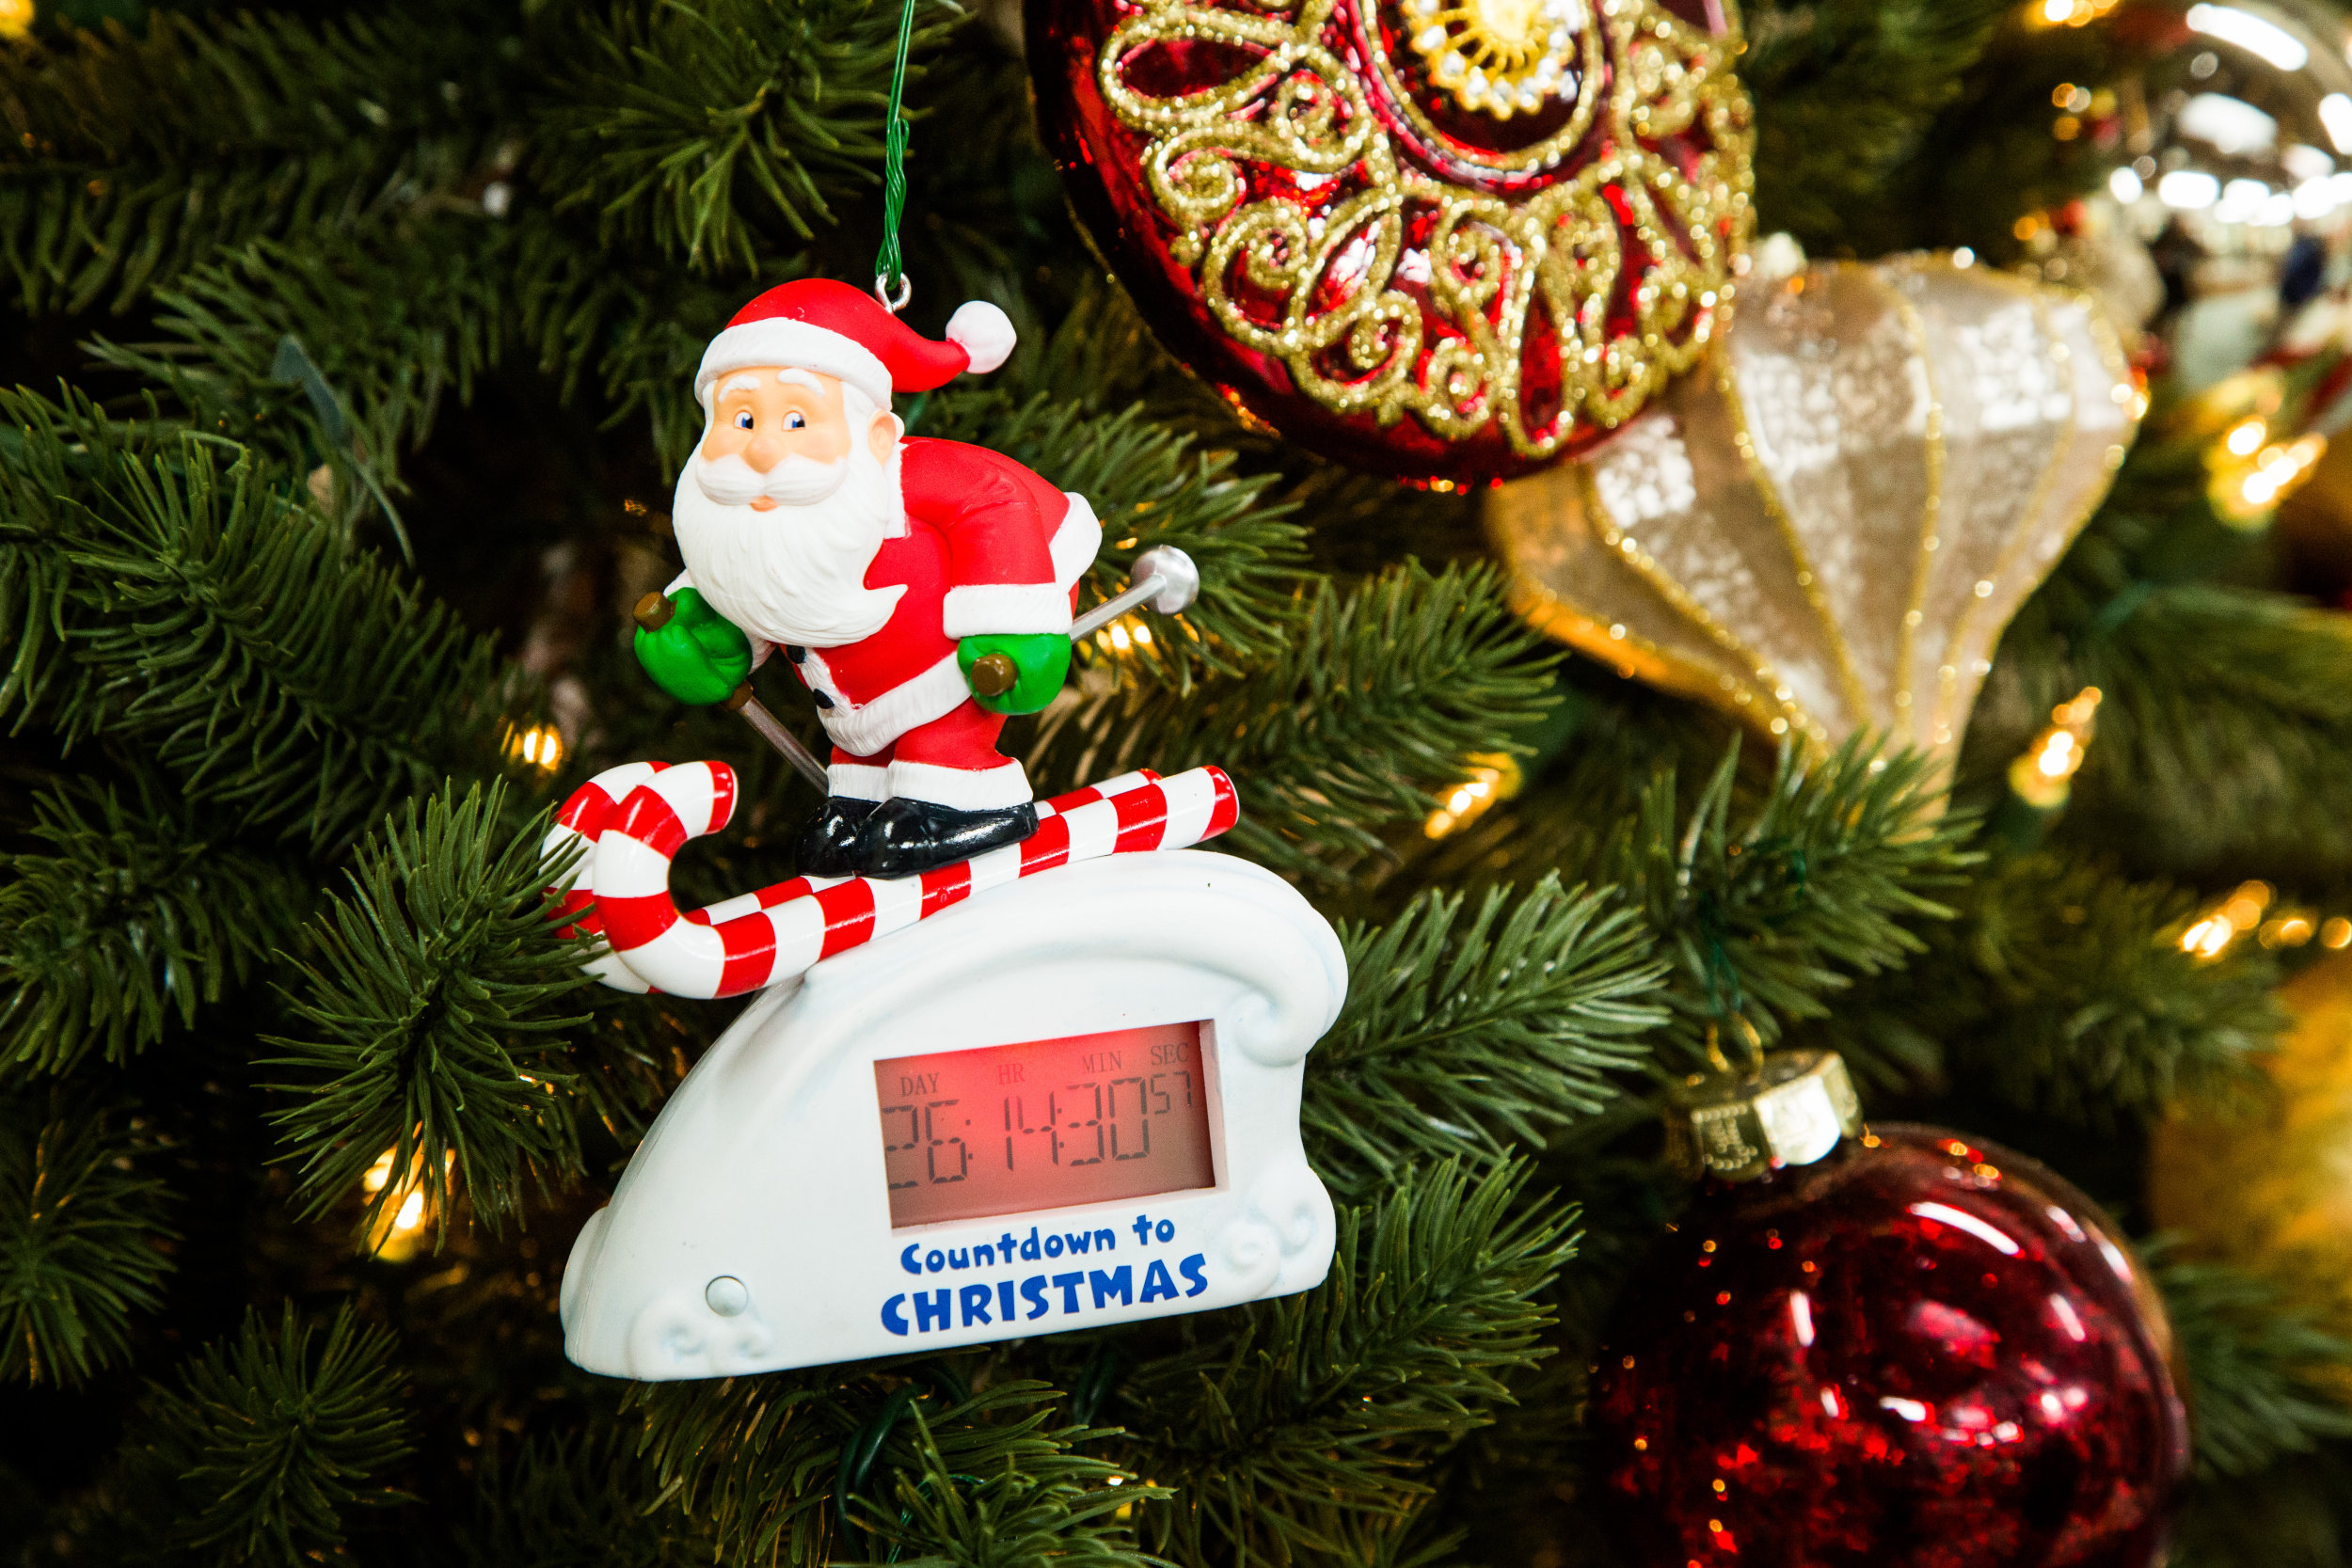 Countdown To Christmas Clock.Santa Skiing Countdown To Christmas Clock Home Family